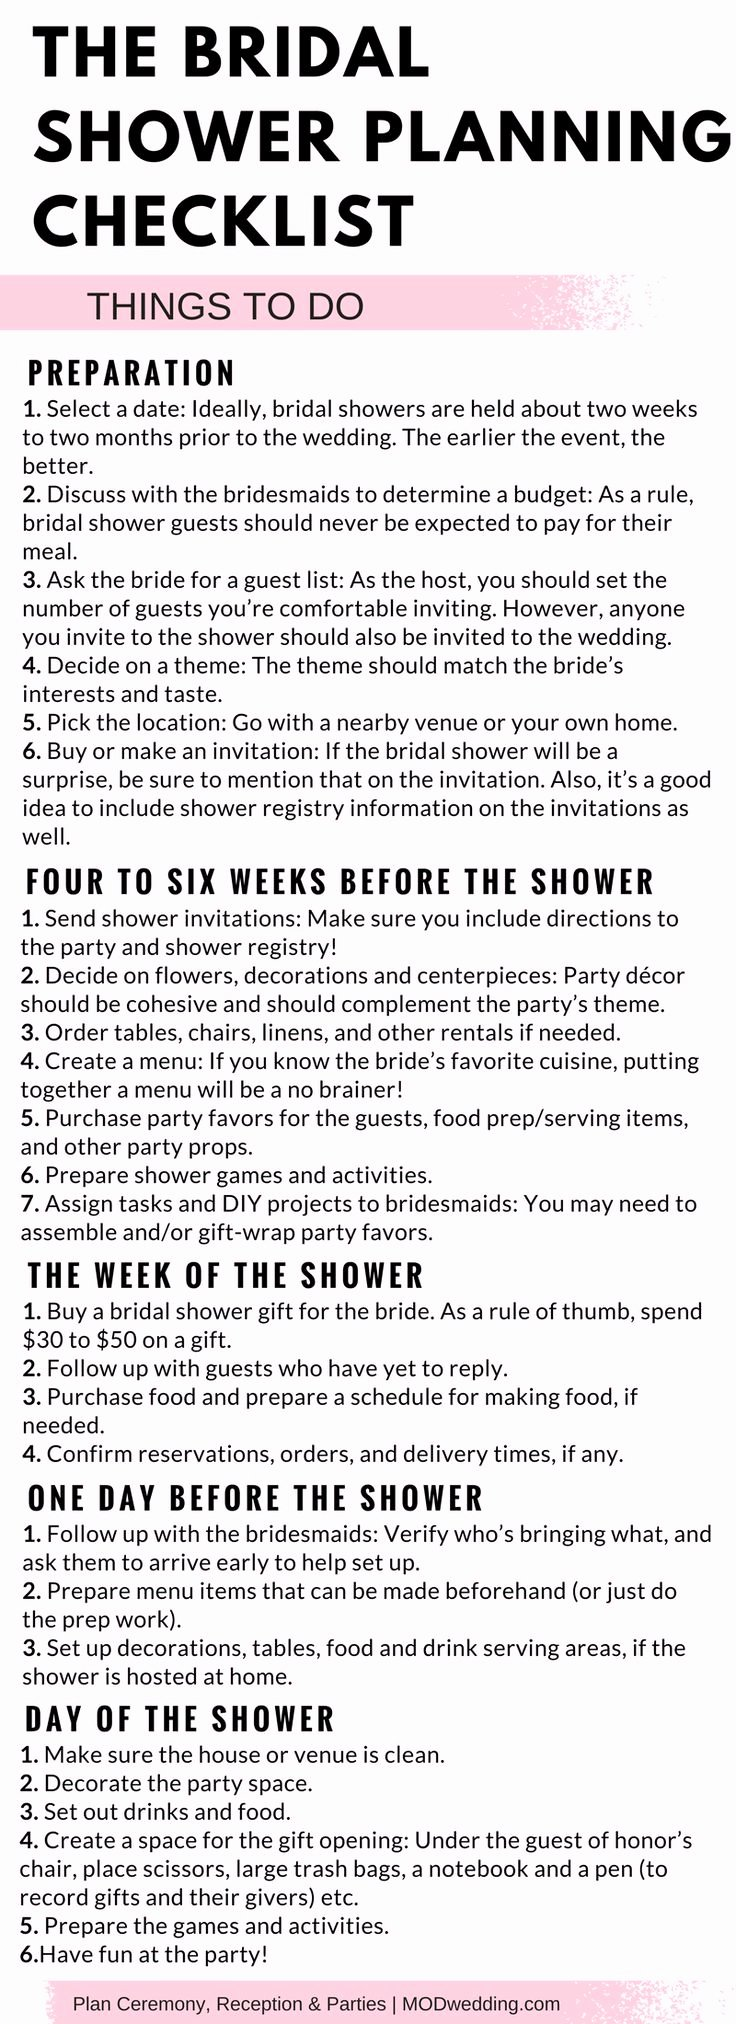 Bridal Shower Checklist Printable Fresh Best 25 Bridal Shower Checklist Ideas On Pinterest